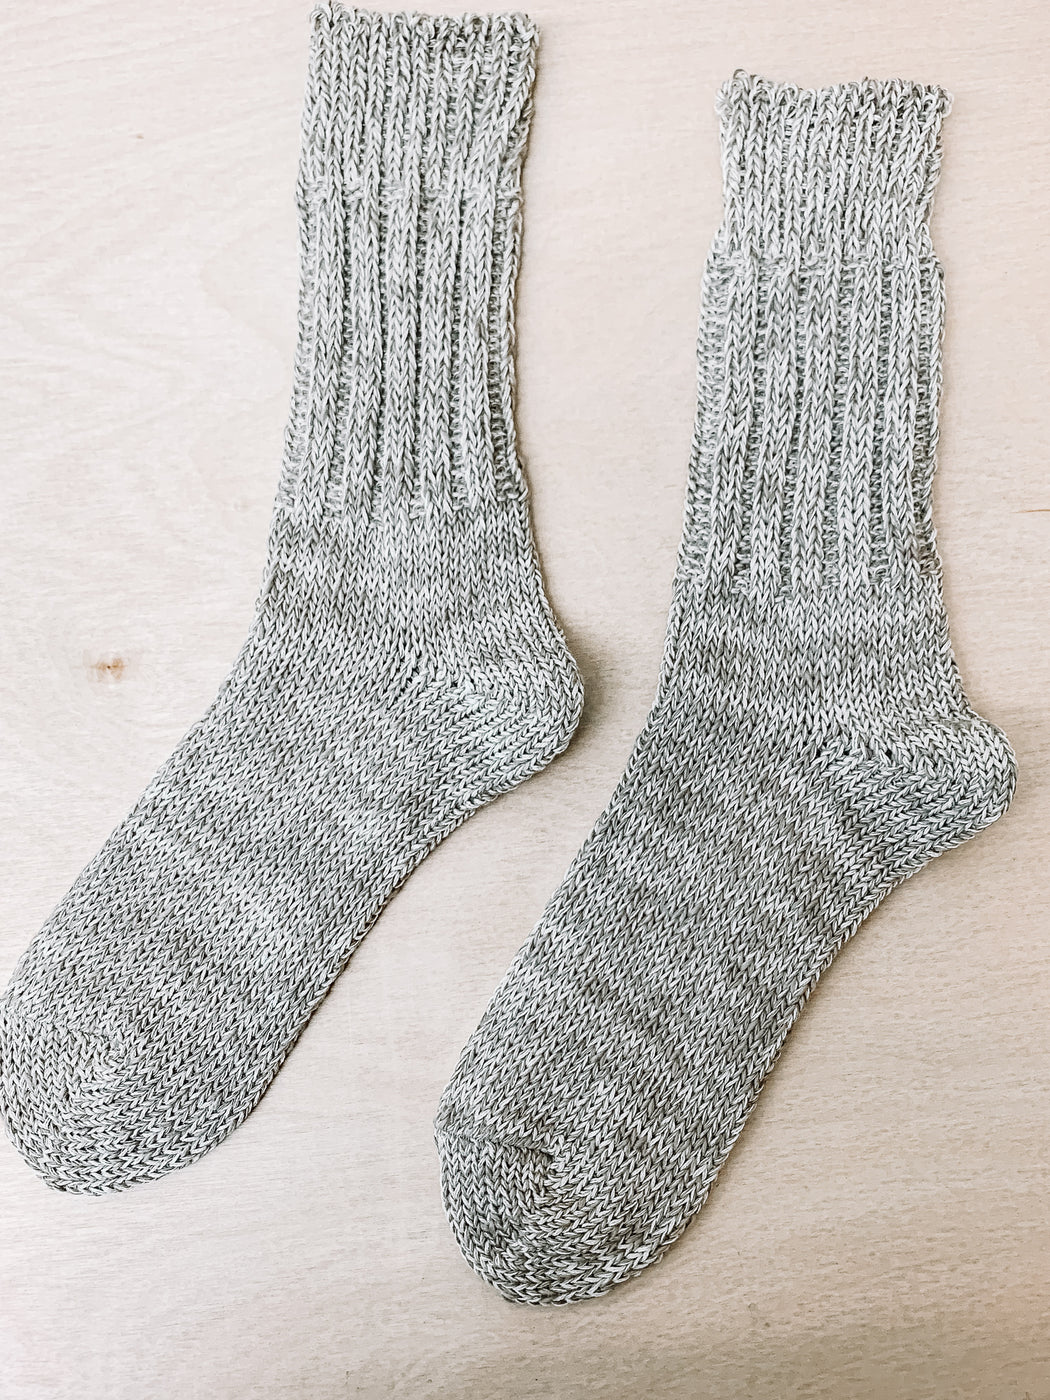 Lore General- Linen Cotton Blend Socks